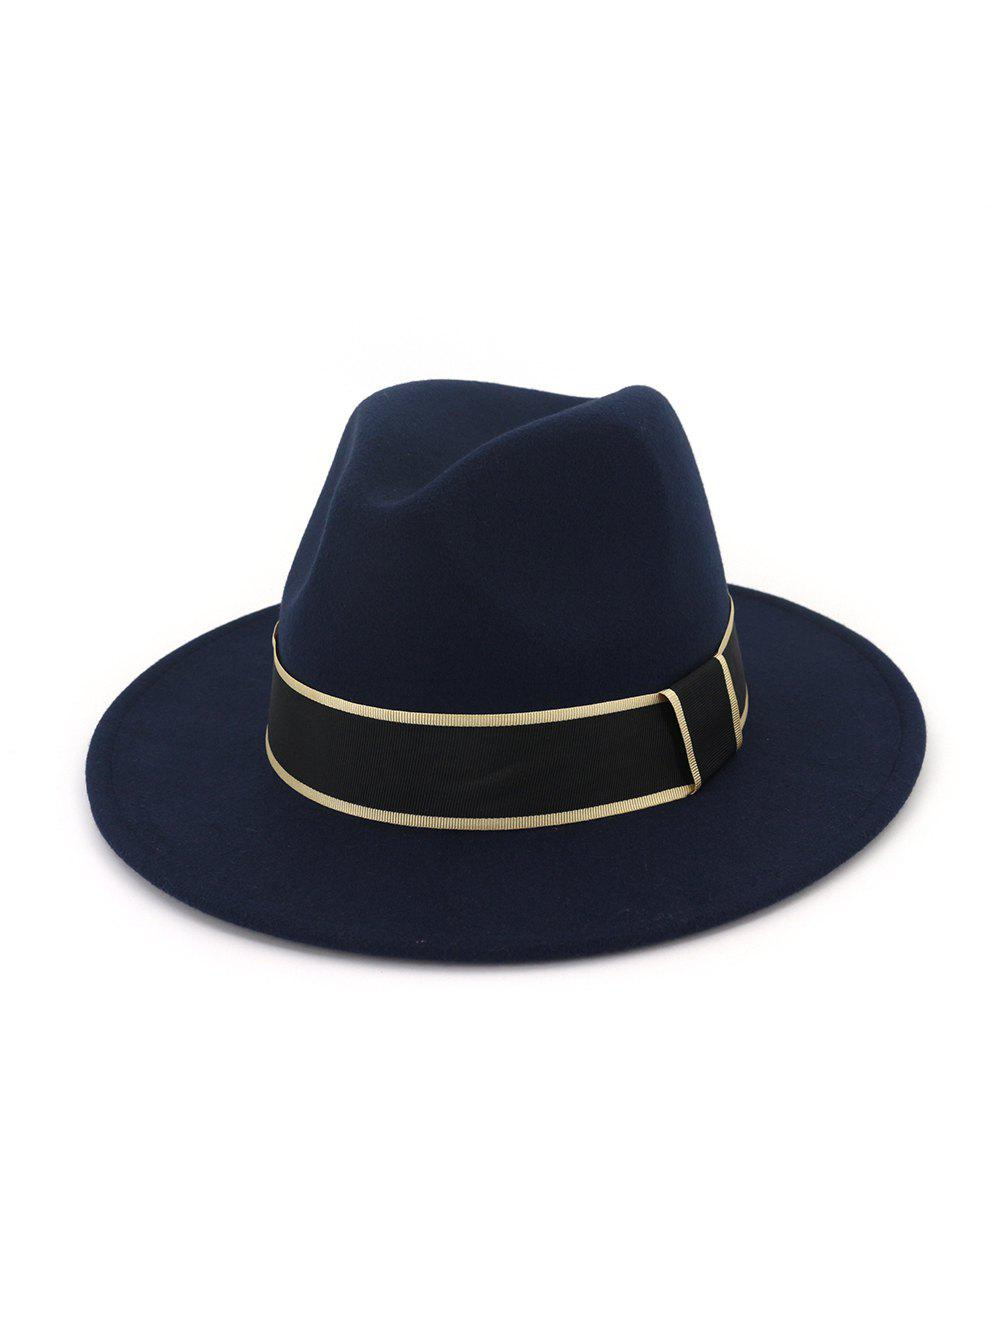 Chic Ribbon Decorated Woolen Floppy Jazz Hat